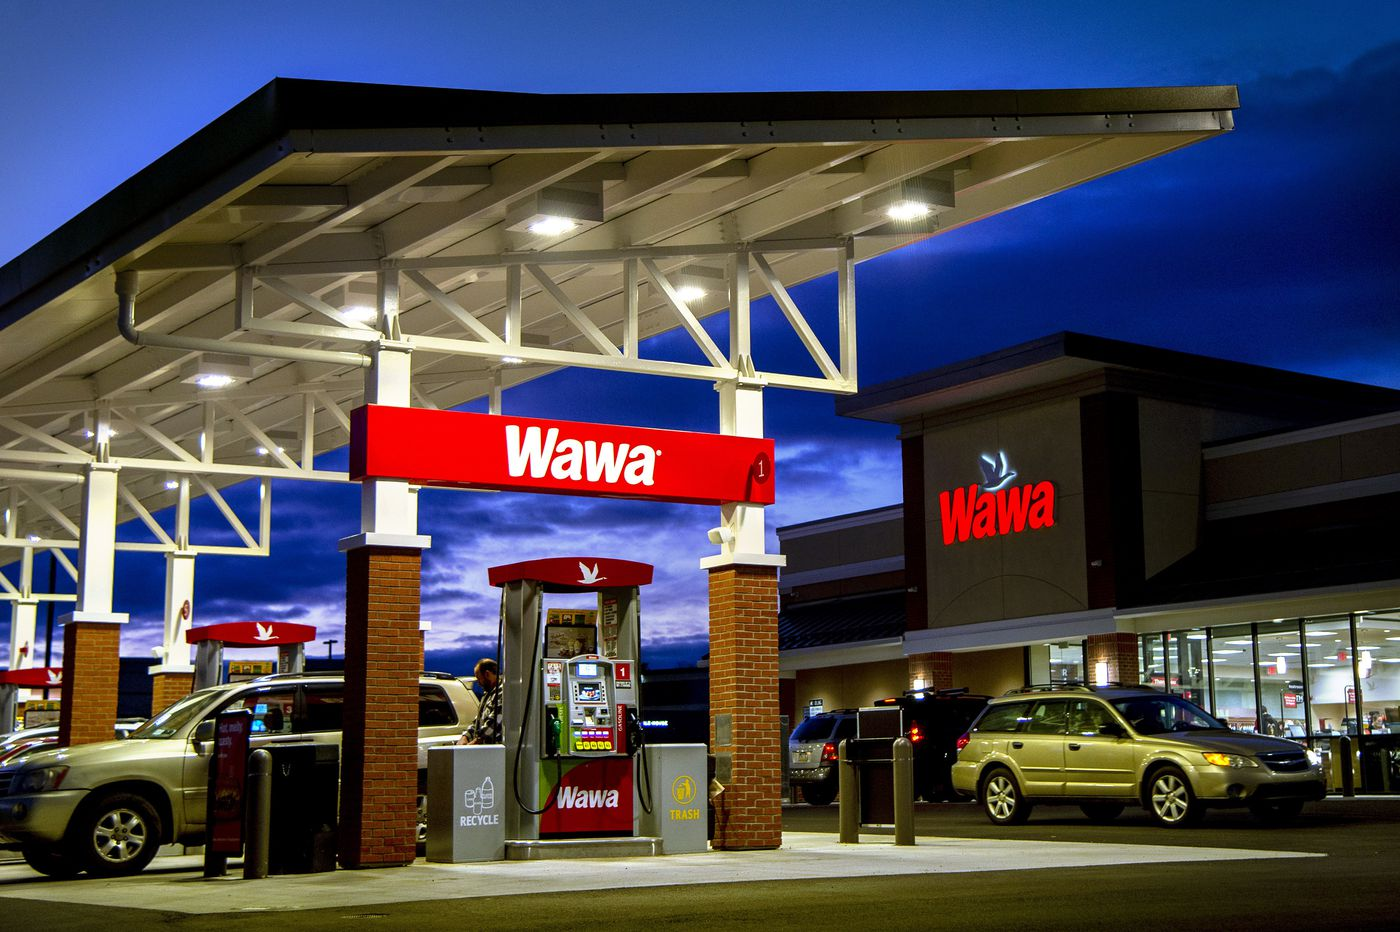 Wawa agrees to pay $21.6 million to settle case brought by ex-workers forced to sell shares